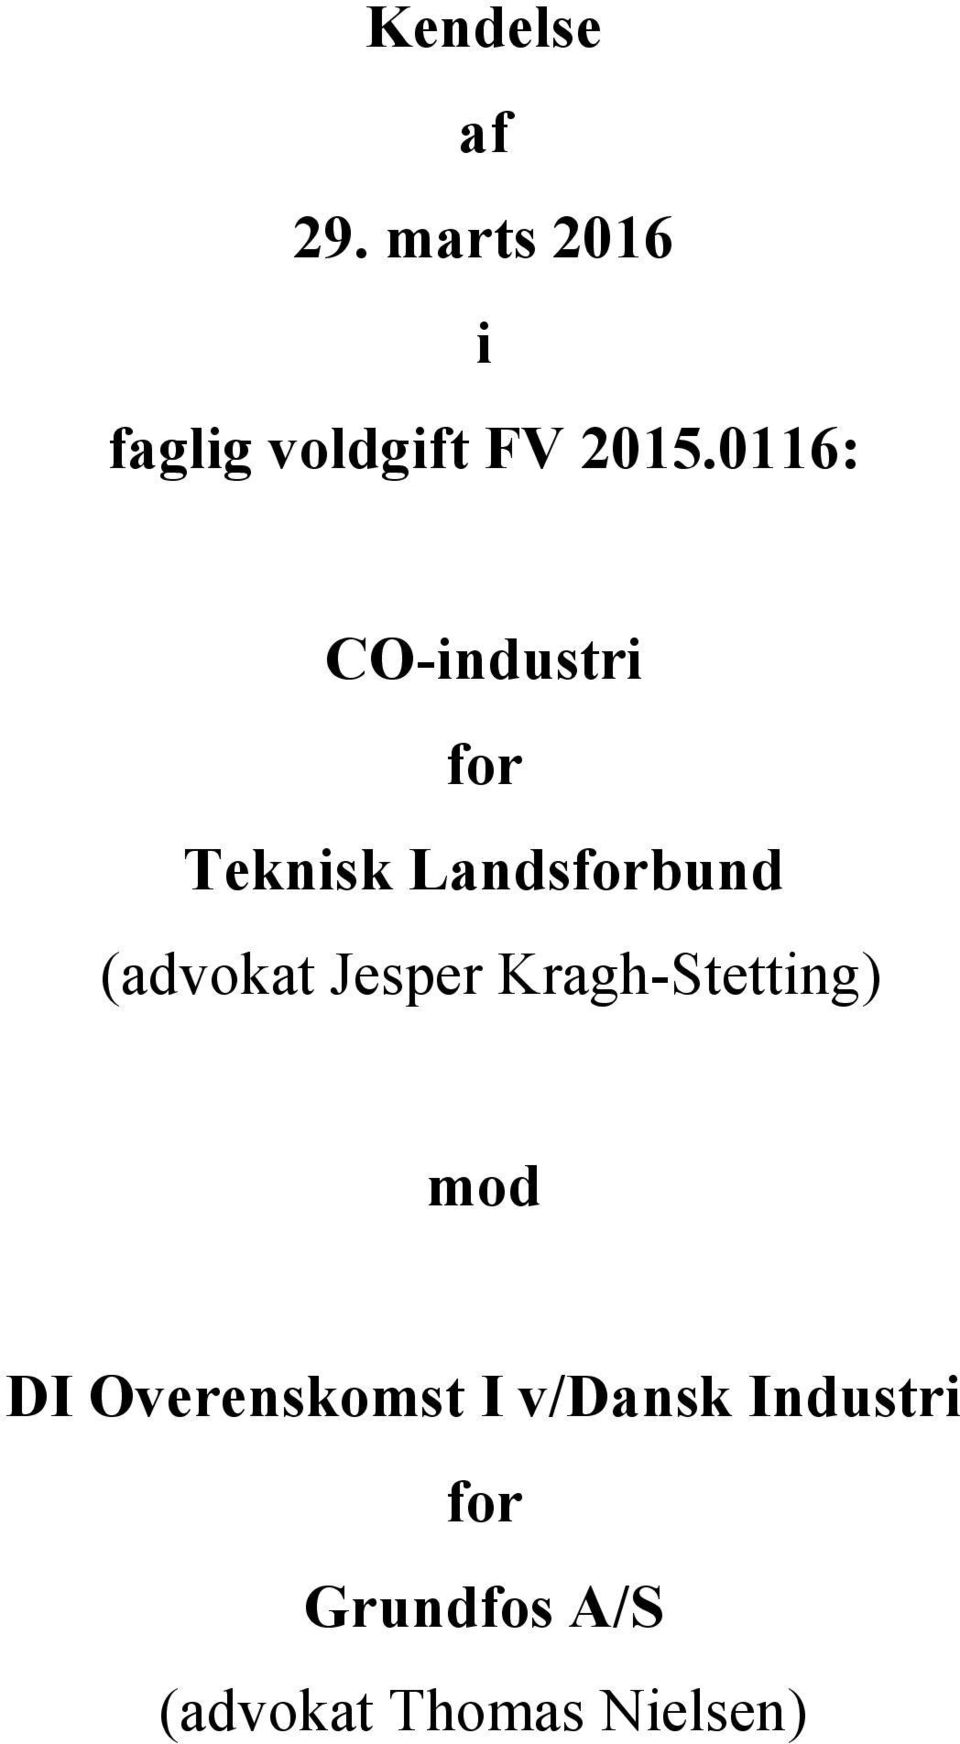 0116: CO-industri for Teknisk Landsforbund (advokat